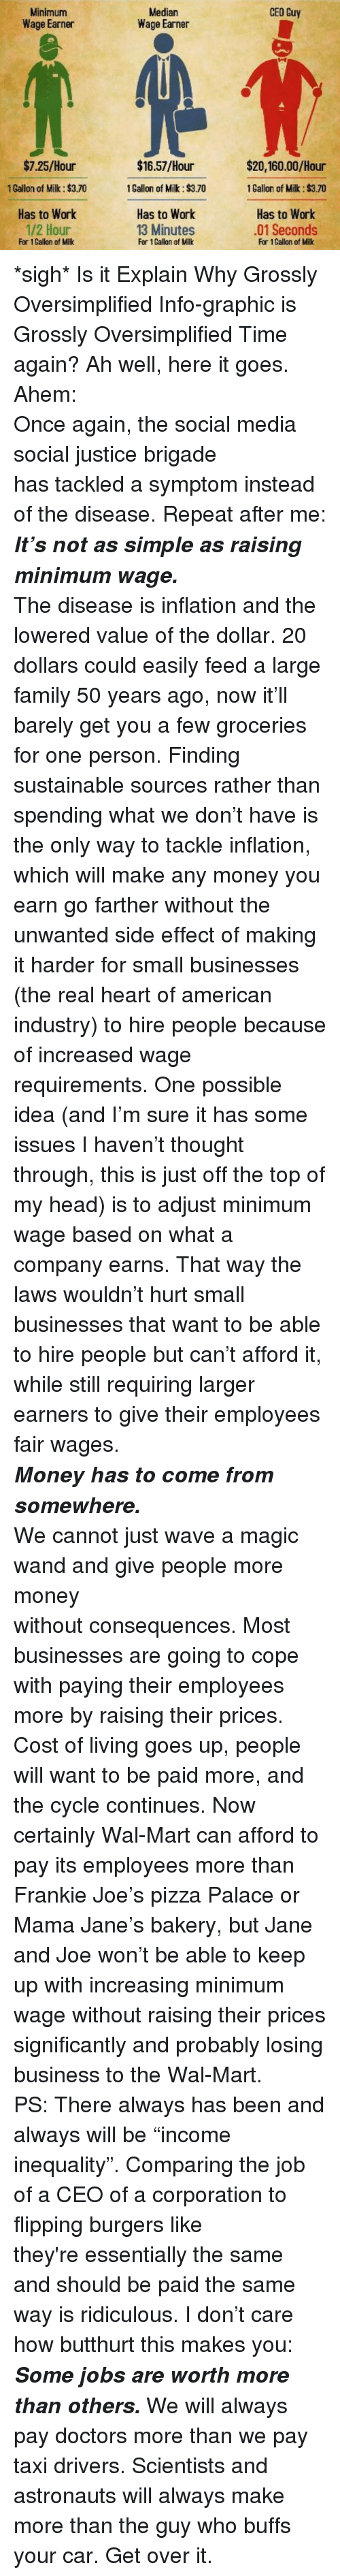 Butthurt, Family, and Head: Median  Wage Earner  CEO Guy  Minimum  Wage Earner  $7.25/Hour  1 Gallon of Milk:$3.70  Has to Work  1/2 Hour  $16.57/Hour  1 Gallon of Milk: $3.70  Has to Work  $20,160.00/Hour  1 Gallon of Milk: $3.70  Has to Work  01 Seconds  13 Minutes  For 1 Callon of Milk  For 1 Gallon of Milk  For 1 Callon of Milk <p>*sigh* Is it Explain Why Grossly Oversimplified Info-graphic is Grossly Oversimplified Time again? Ah well, here it goes. Ahem:</p> <p><span><span>Onceagain, the social media social justice brigade hastackledasymptominstead ofthedisease.Repeat after me: <em><strong>It&rsquo;s not assimple as raising minimum wage. </strong></em></span></span></p> <p><span><span>The disease is inflation and the lowered value of the dollar. 20 dollars could easily feed a large family 50 years ago, now it&rsquo;ll barely get you a few groceries for one person. Finding sustainable sources rather than spending what we don&rsquo;t have is the only way to tackle inflation, which will make any money you earn go farther without the unwanted side effect of making it harder for small businesses (the real heart of american industry) to hire people because of increased wage requirements. One possible idea (and I&rsquo;m sure it has some issues I haven&rsquo;t thought through, this is just off the top of my head) is to adjust minimum wage based on what a company earns. That way the laws wouldn&rsquo;t hurt small businesses that want to be able to hire people but can&rsquo;t afford it, while still requiring larger earners to give their employees fair wages.</span></span></p> <p><em><strong><span><span>Money has to come from somewhere.</span></span></strong></em></p> <p><span><span>We cannot just wave a magic wand and give people more money withoutconsequences.</span></span><span>Most businesses are going to cope with paying their employees more by raising their prices. Cost of living goes up, people will want to be paid more, and the cycle continues. Now certainly Wal